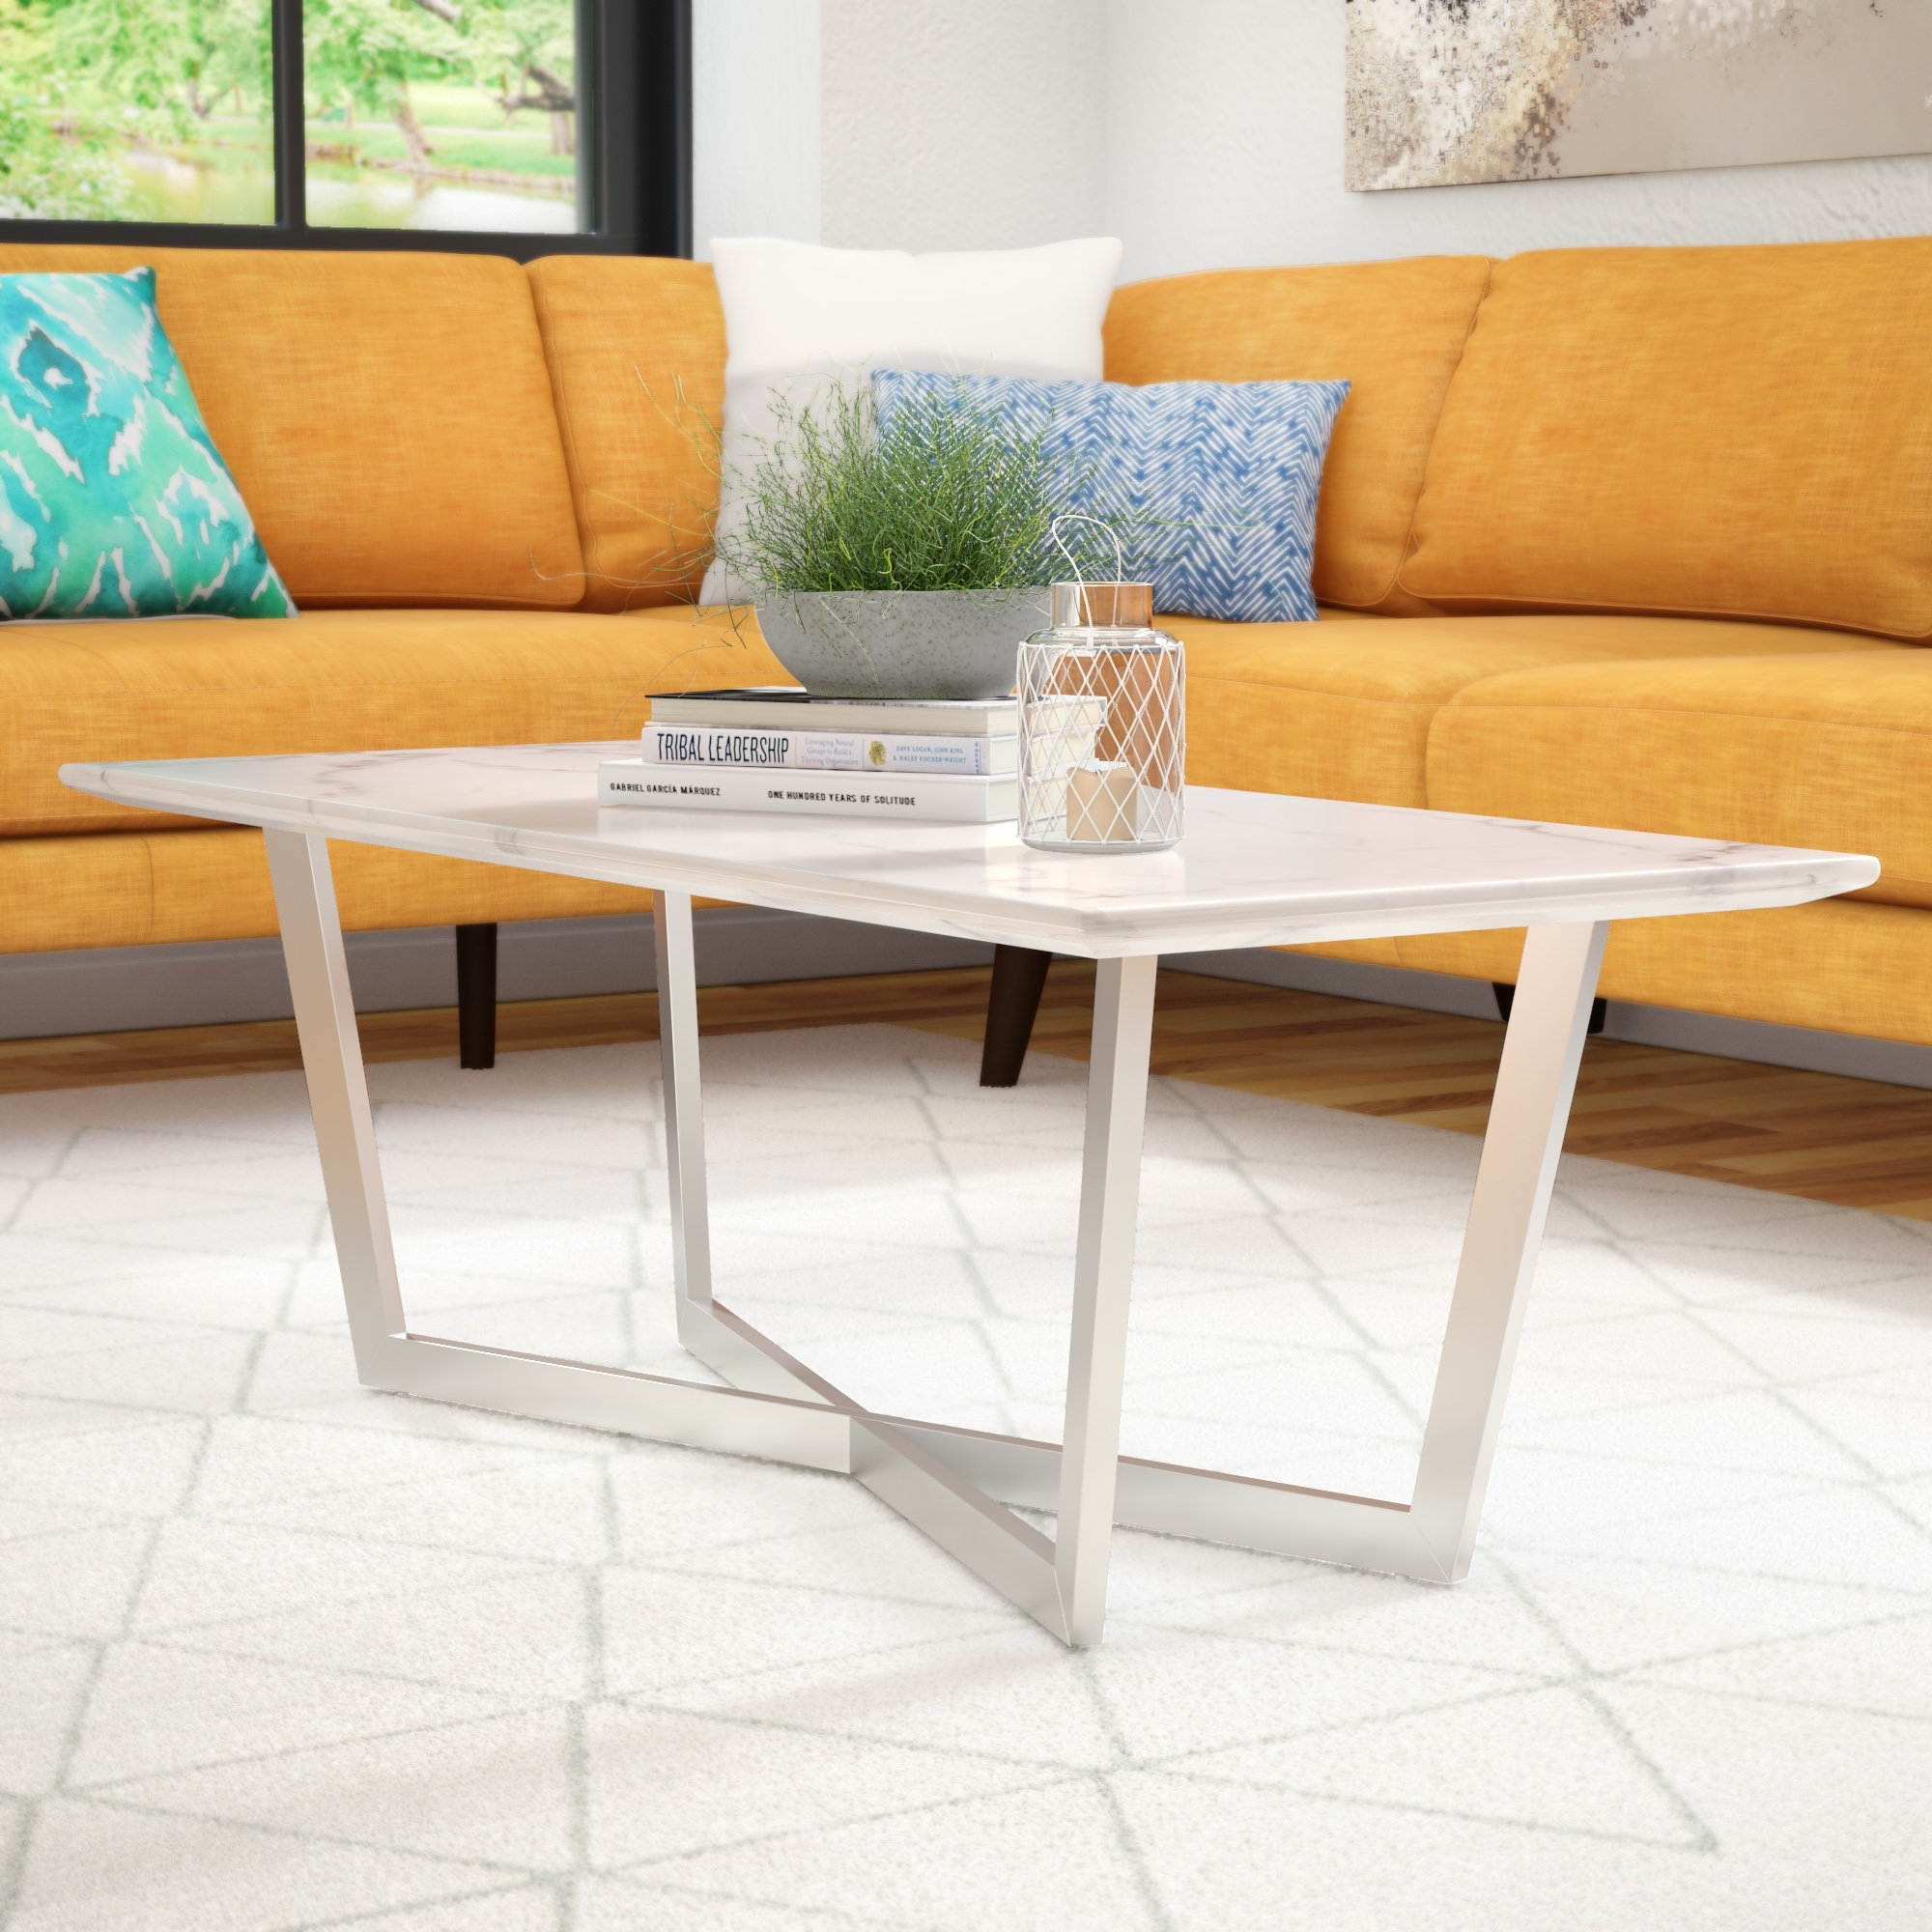 Brayden Studio Rosenbalm Faux Marble Coffee Table & Reviews | Wayfair pertaining to 2 Tone Grey and White Marble Coffee Tables (Image 7 of 30)